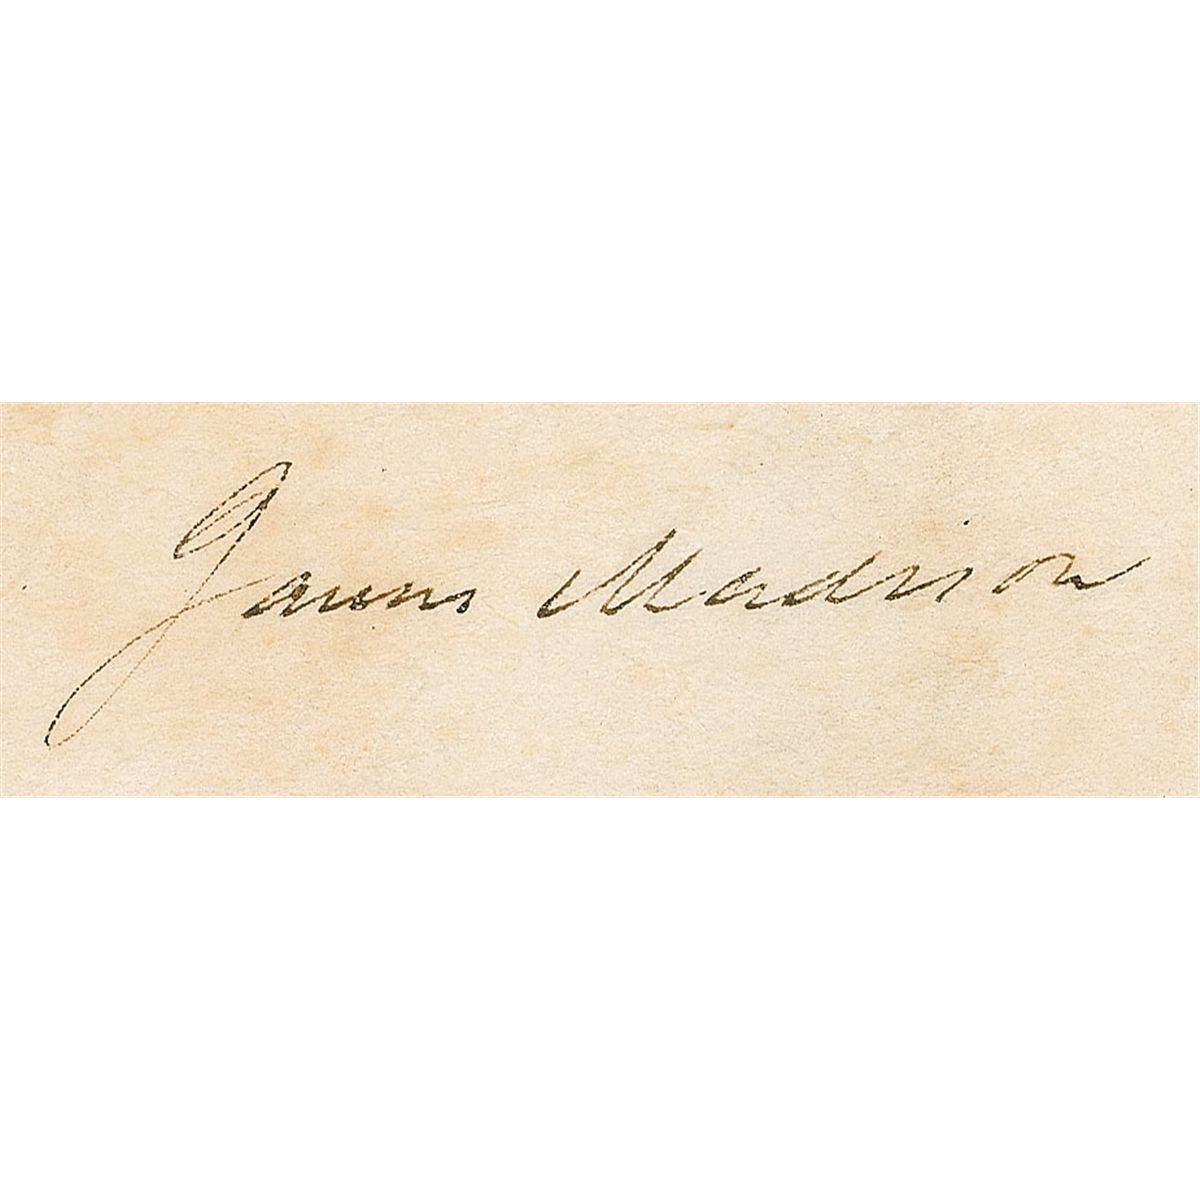 james madison and thomas jefferson essay James madison (1751-1836) is one of 23 presidents whose papers are held in the manuscript division of the library of congress the madison papers consist of approximately 12,000 items, spanning the period 1723-1859, captured in some 72,000 digital images they document the life of the man who came.